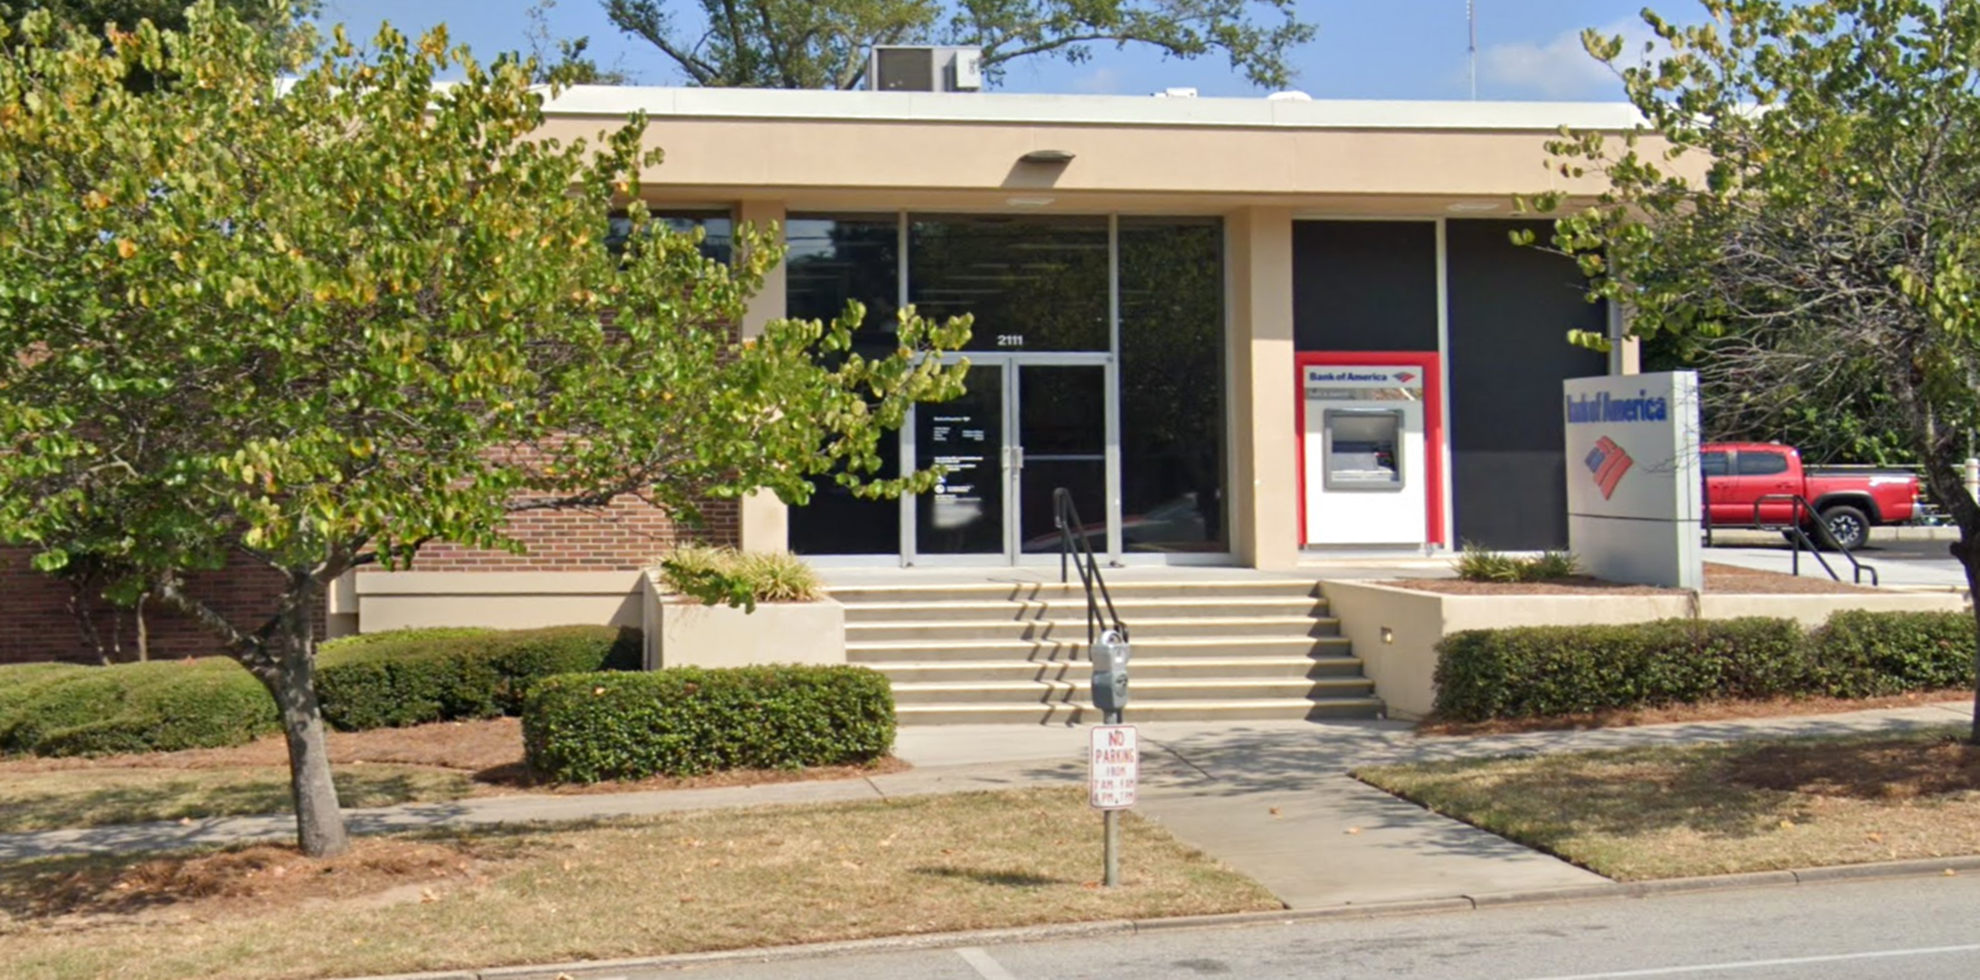 Bank of America financial center with drive-thru ATM   2111 Devine St, Columbia, SC 29205